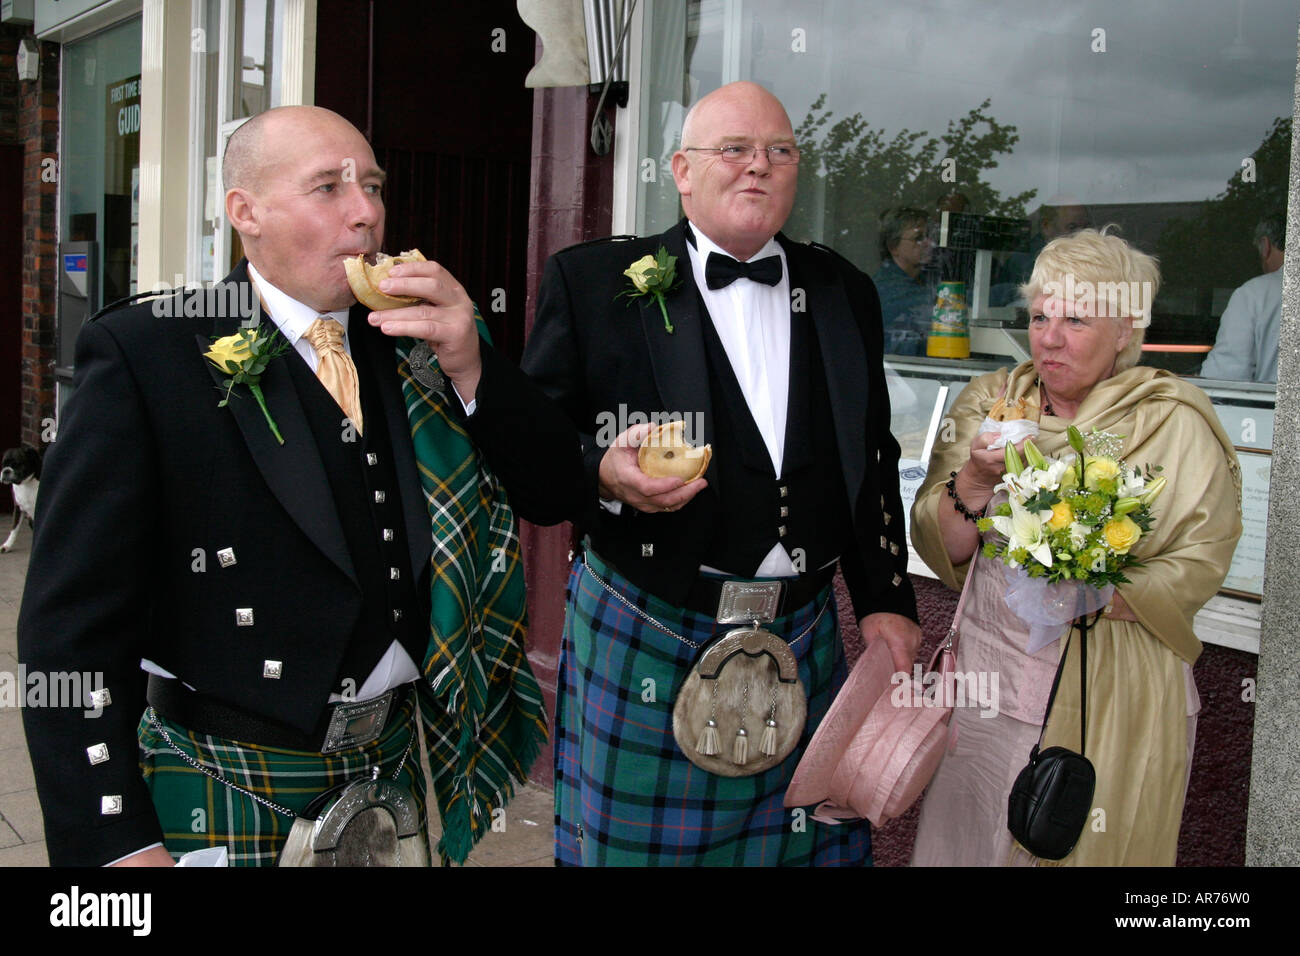 Wedding guests eating out in Gretna Green Scotland - Stock Image